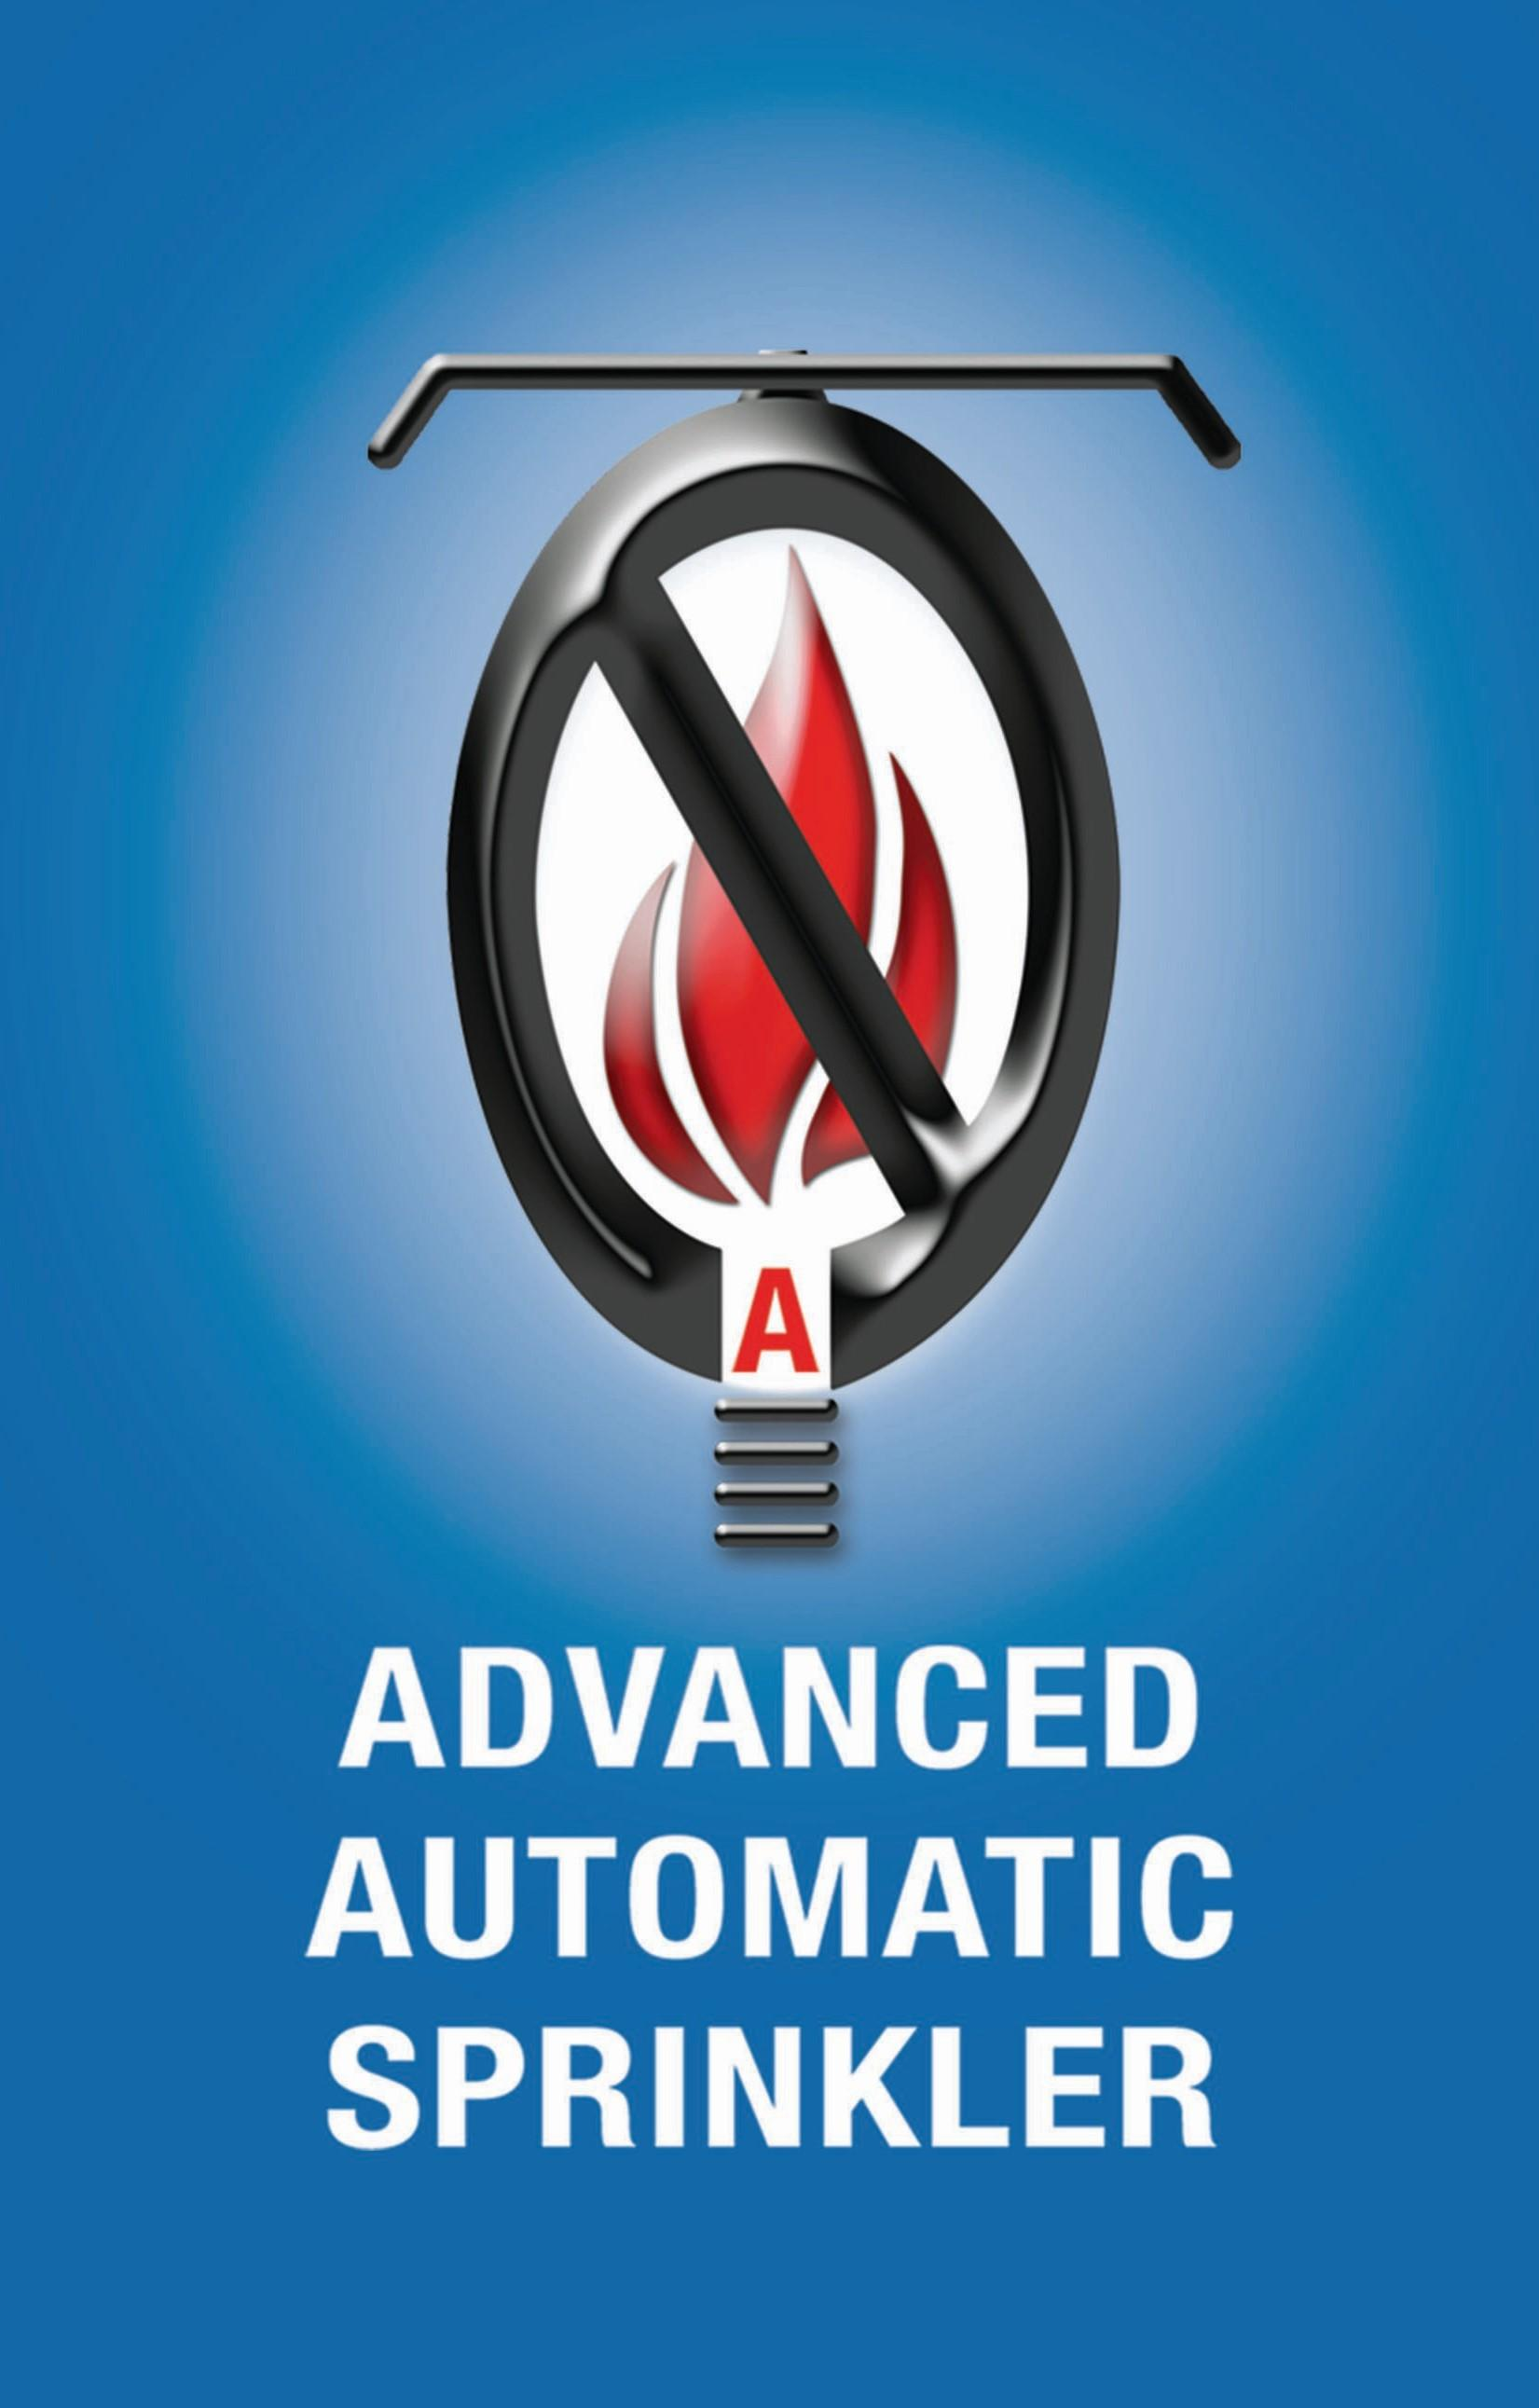 Advanced Automatic Sprinkler Inc